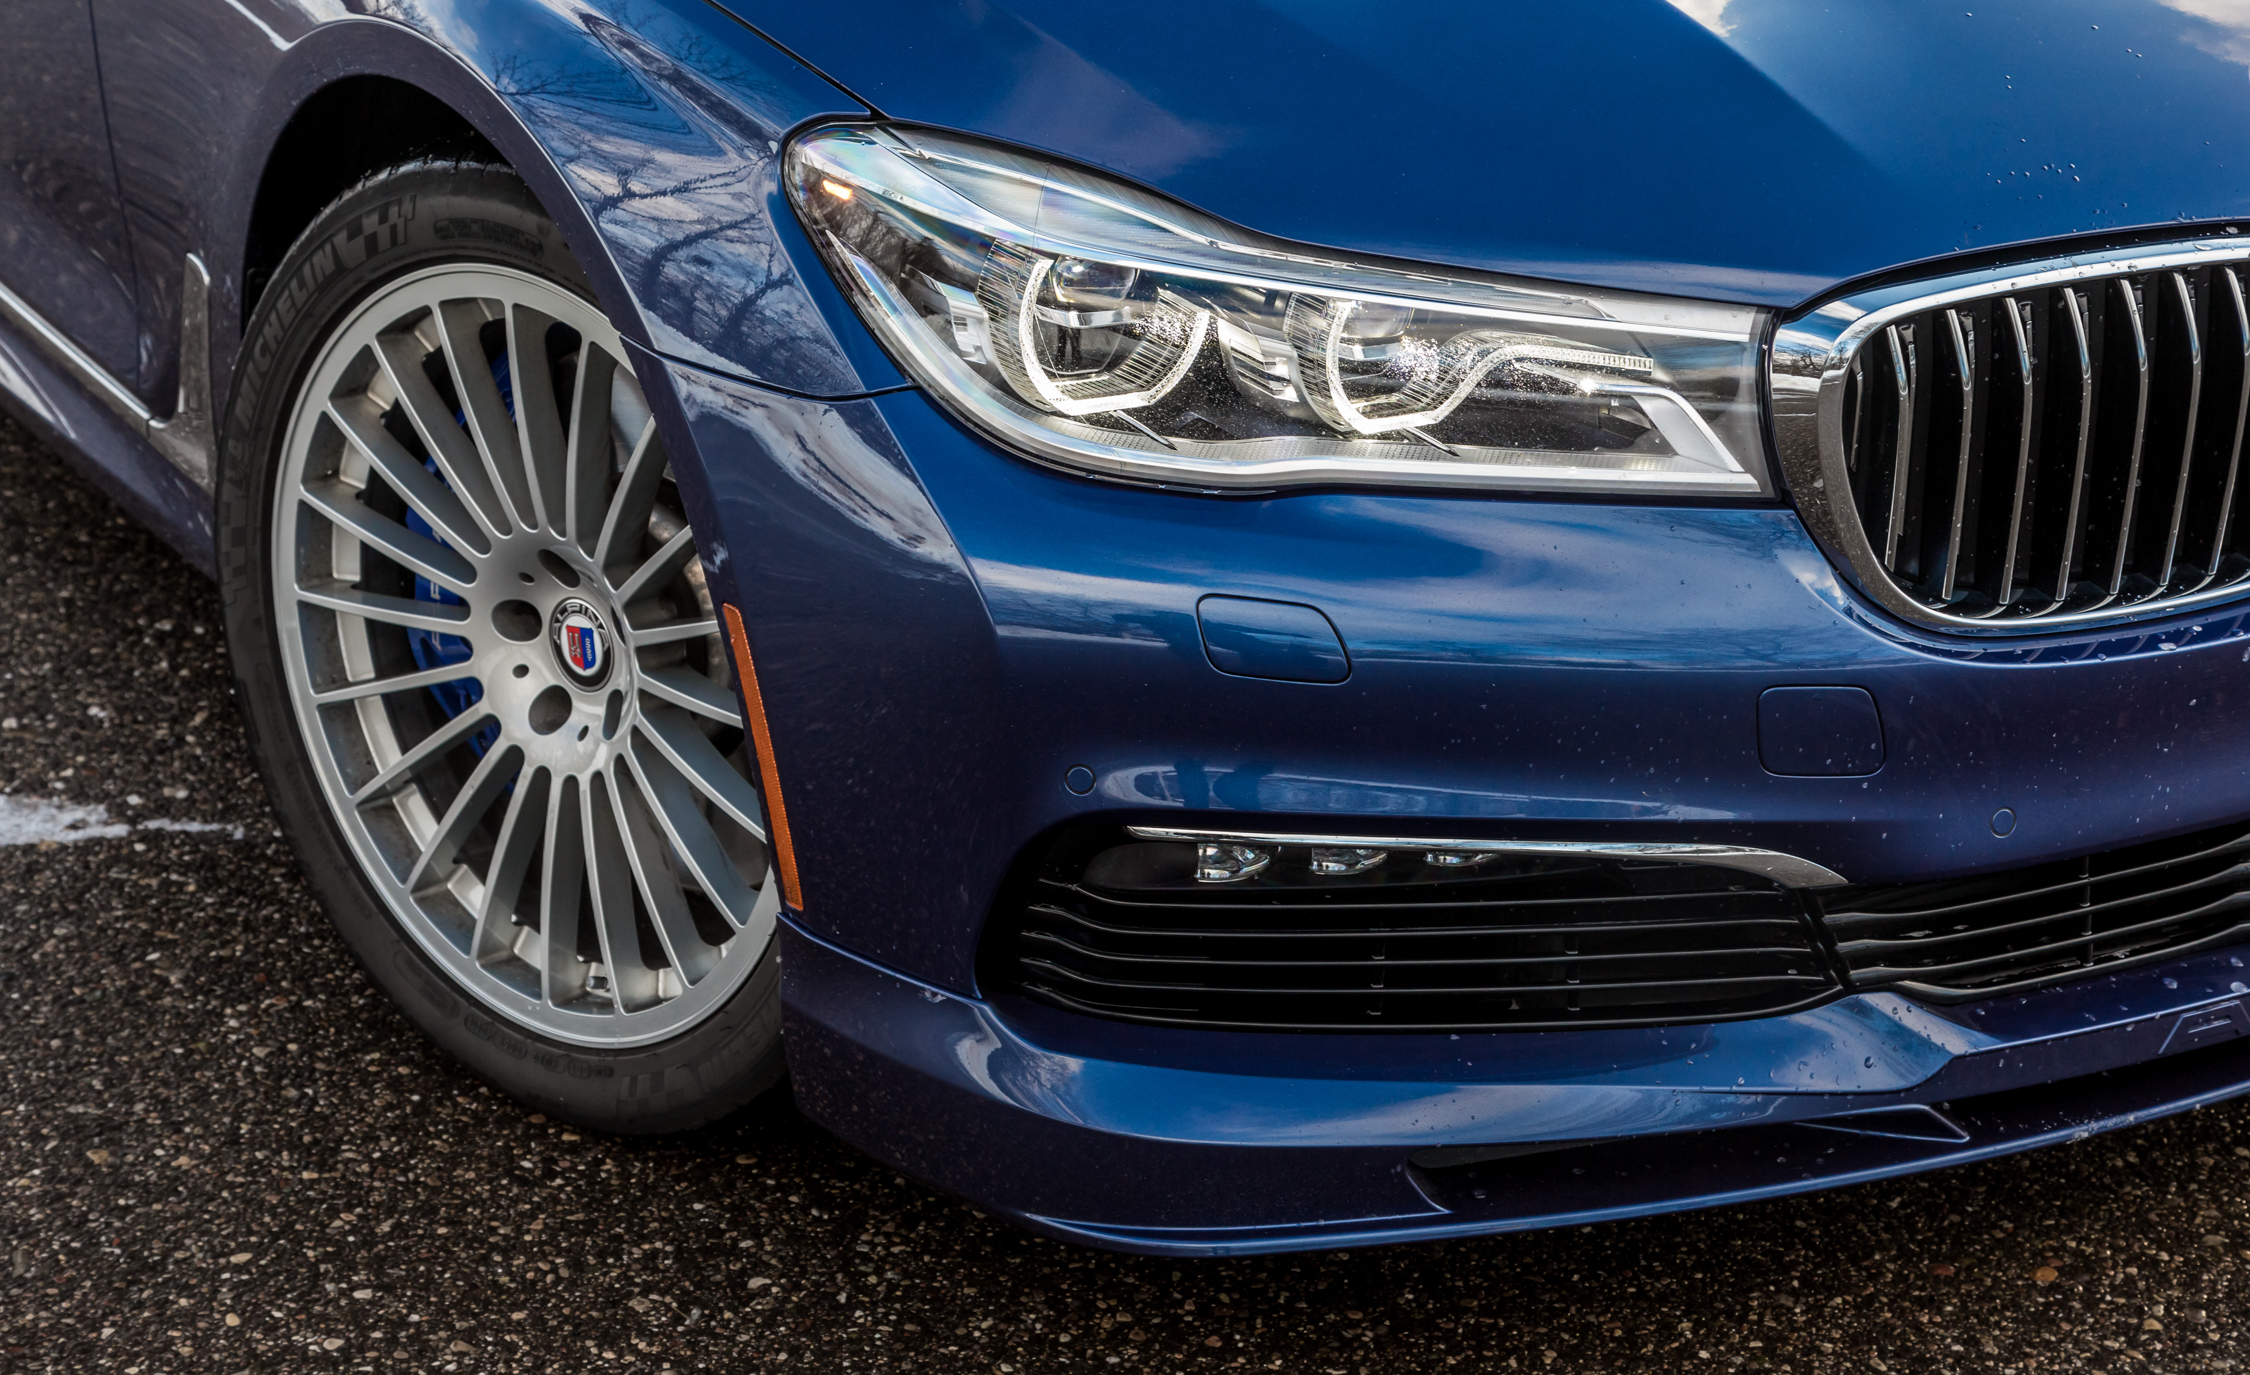 2017 BMW Alpina B7 XDrive Exterior View Headlight (View 13 of 45)